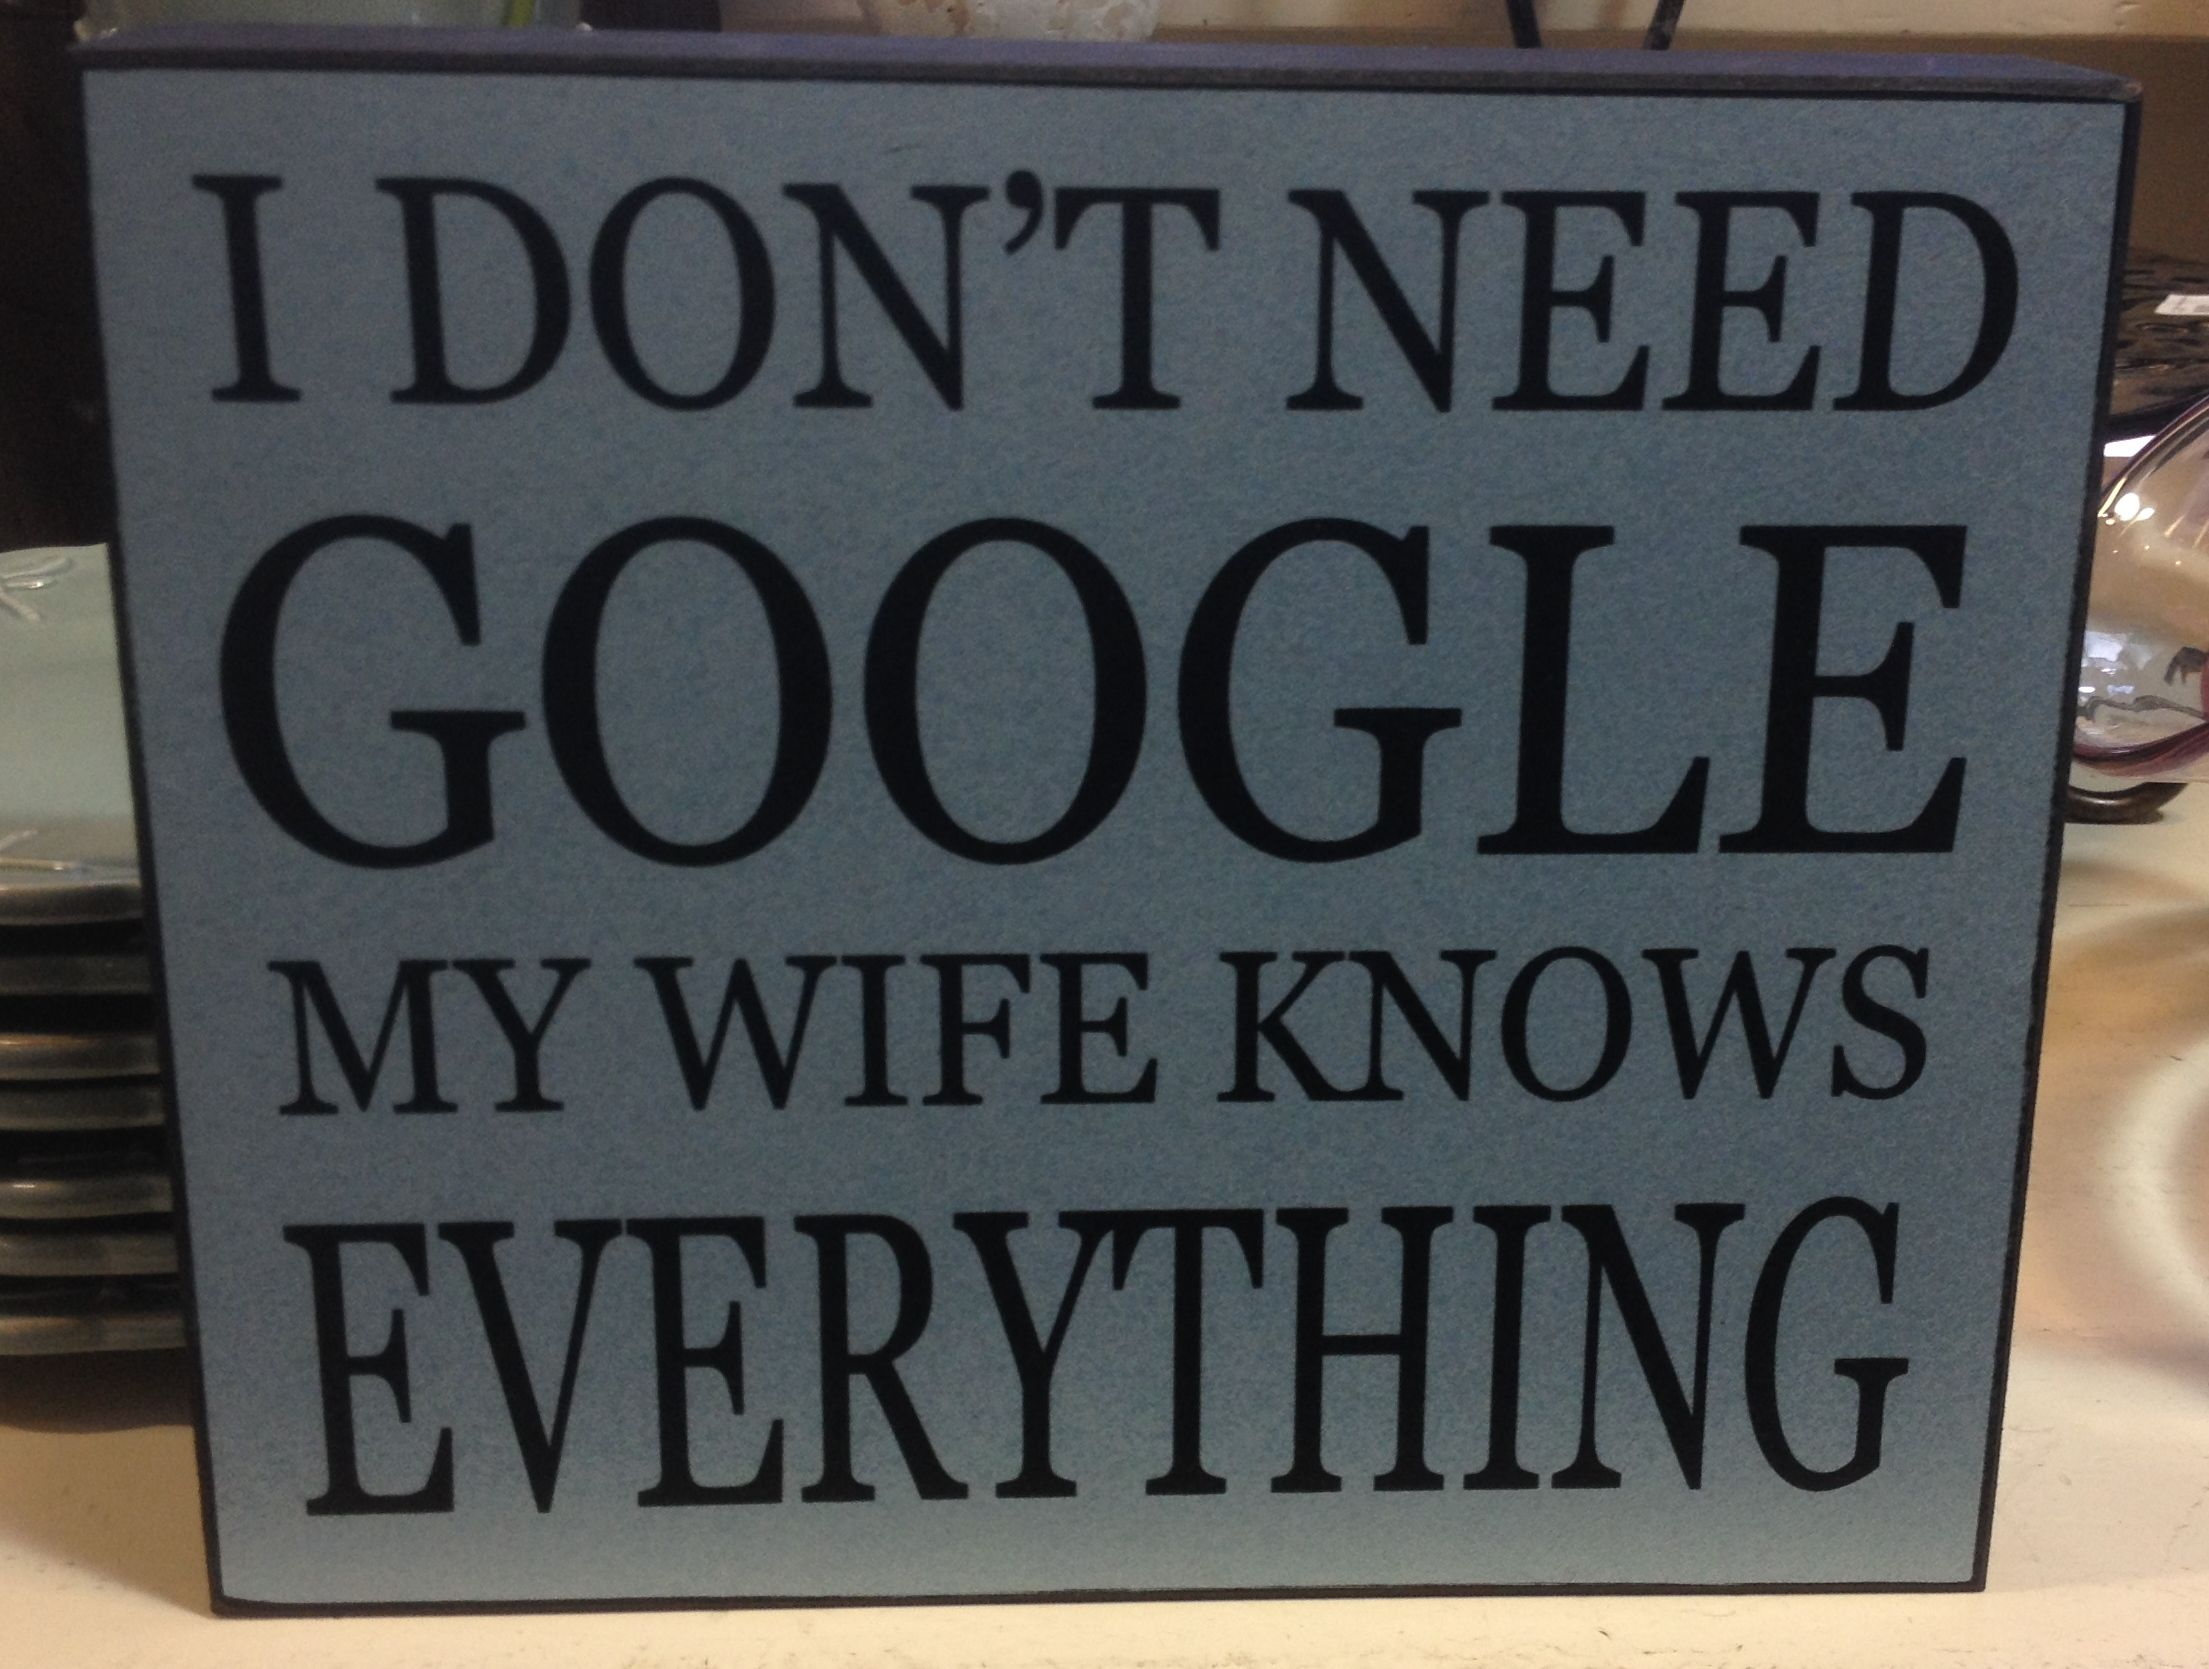 Gentlemen This May Be The Perfect Gift To Purchase For Your Wife